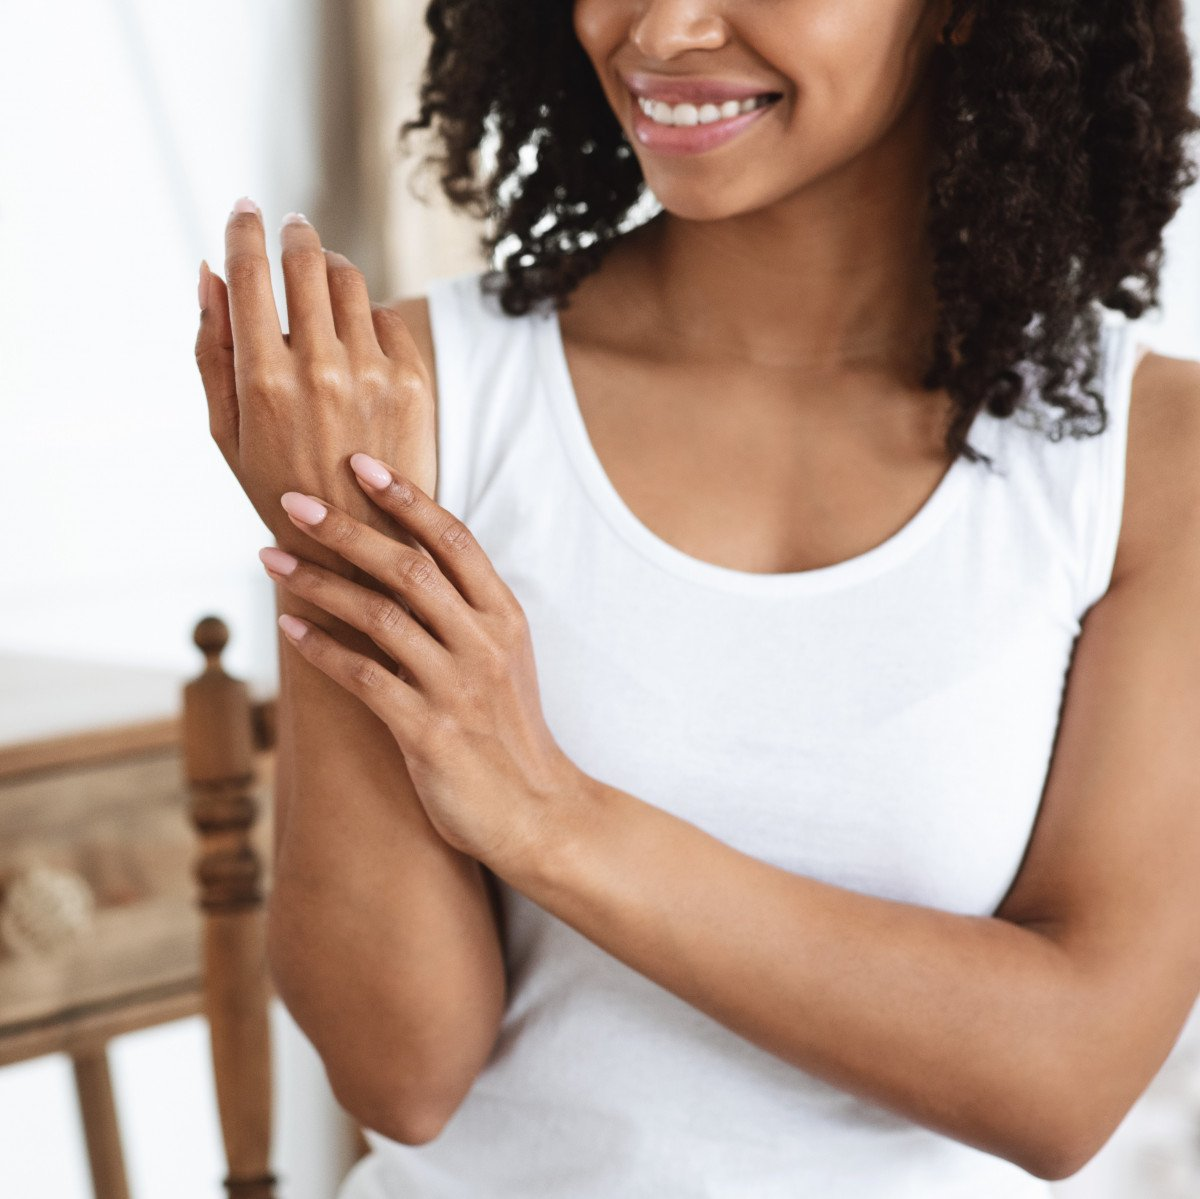 The Self - Care routine your hands didn't know they needed